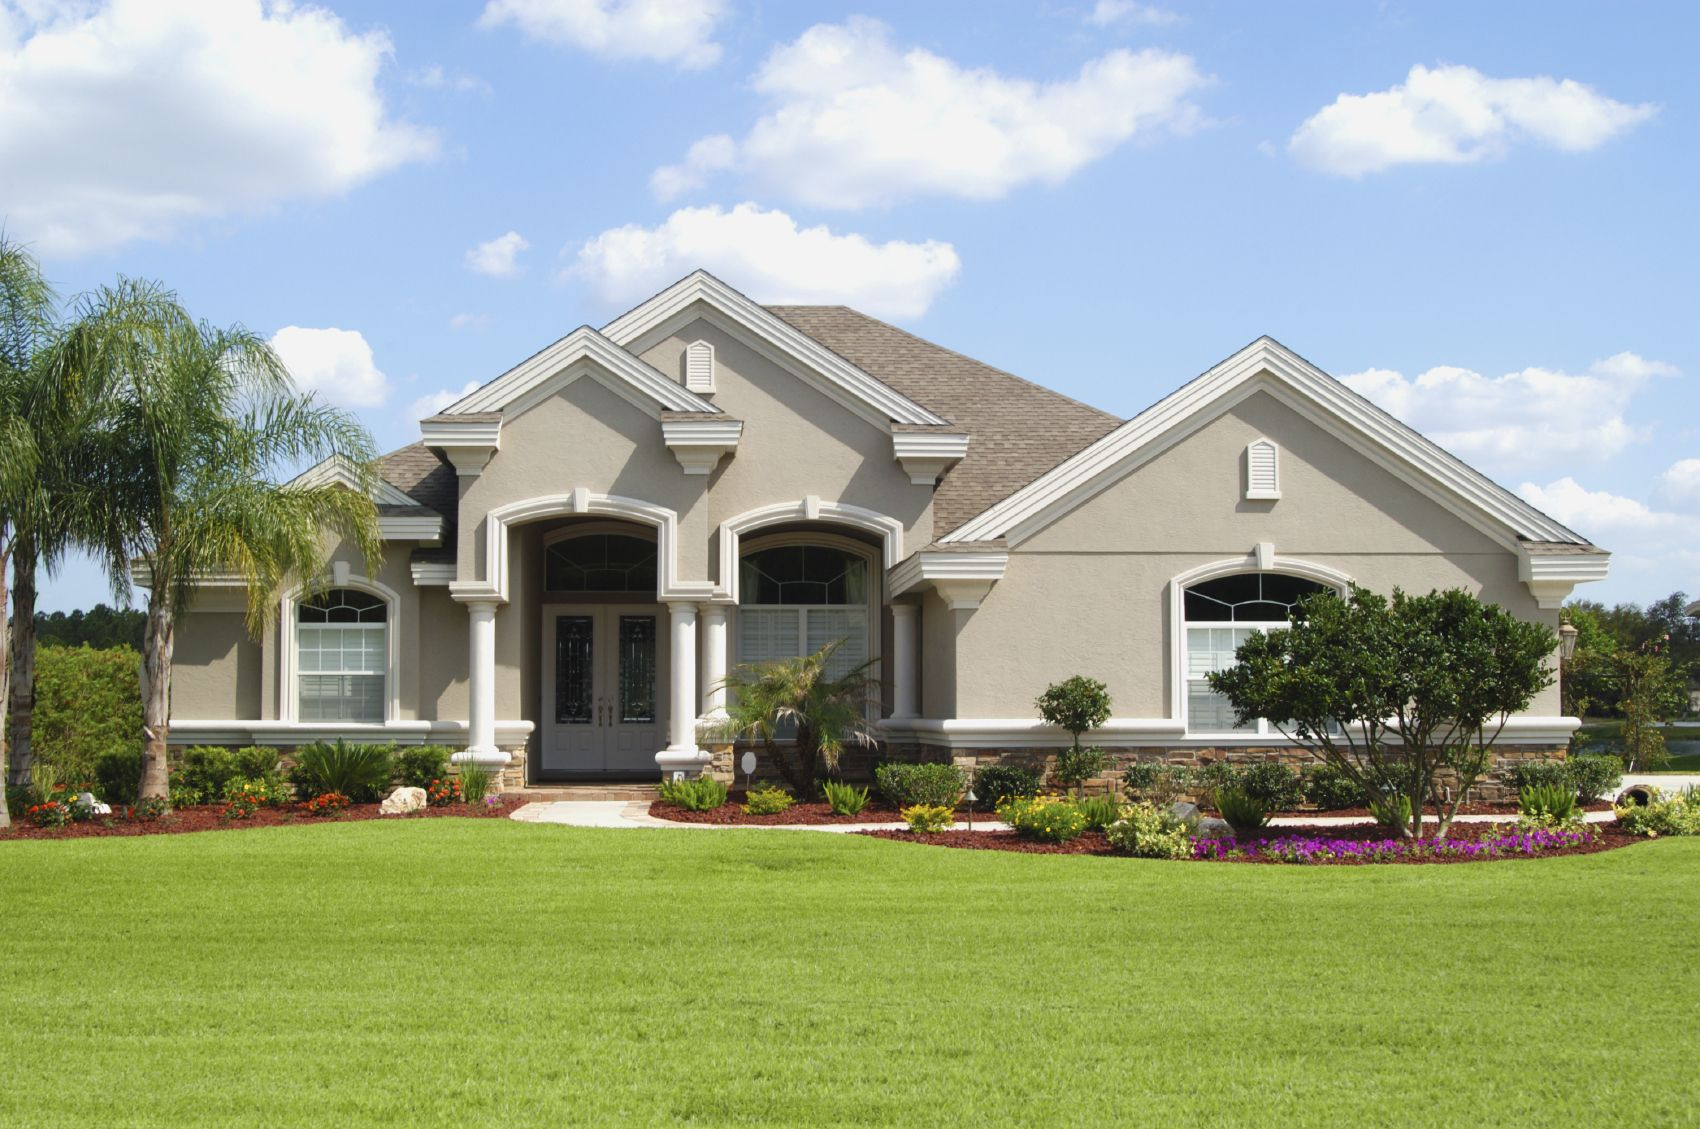 Stucco stone exterior choosing exterior stucco cleaning and maintaining exterior stucco - Exterior home cleaning ...